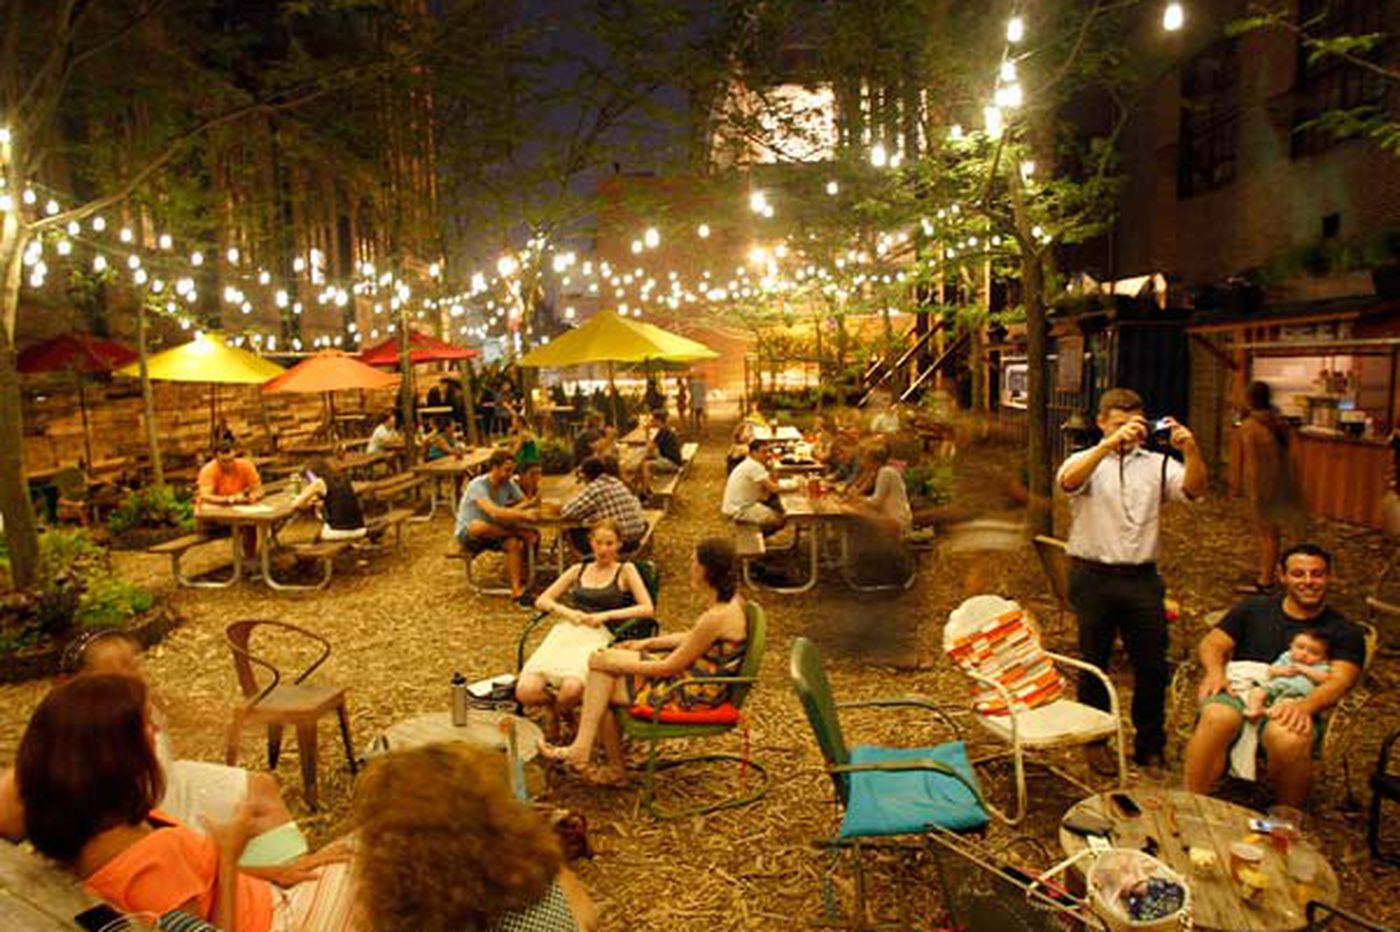 Where to drink outside in Philly this spring and summer